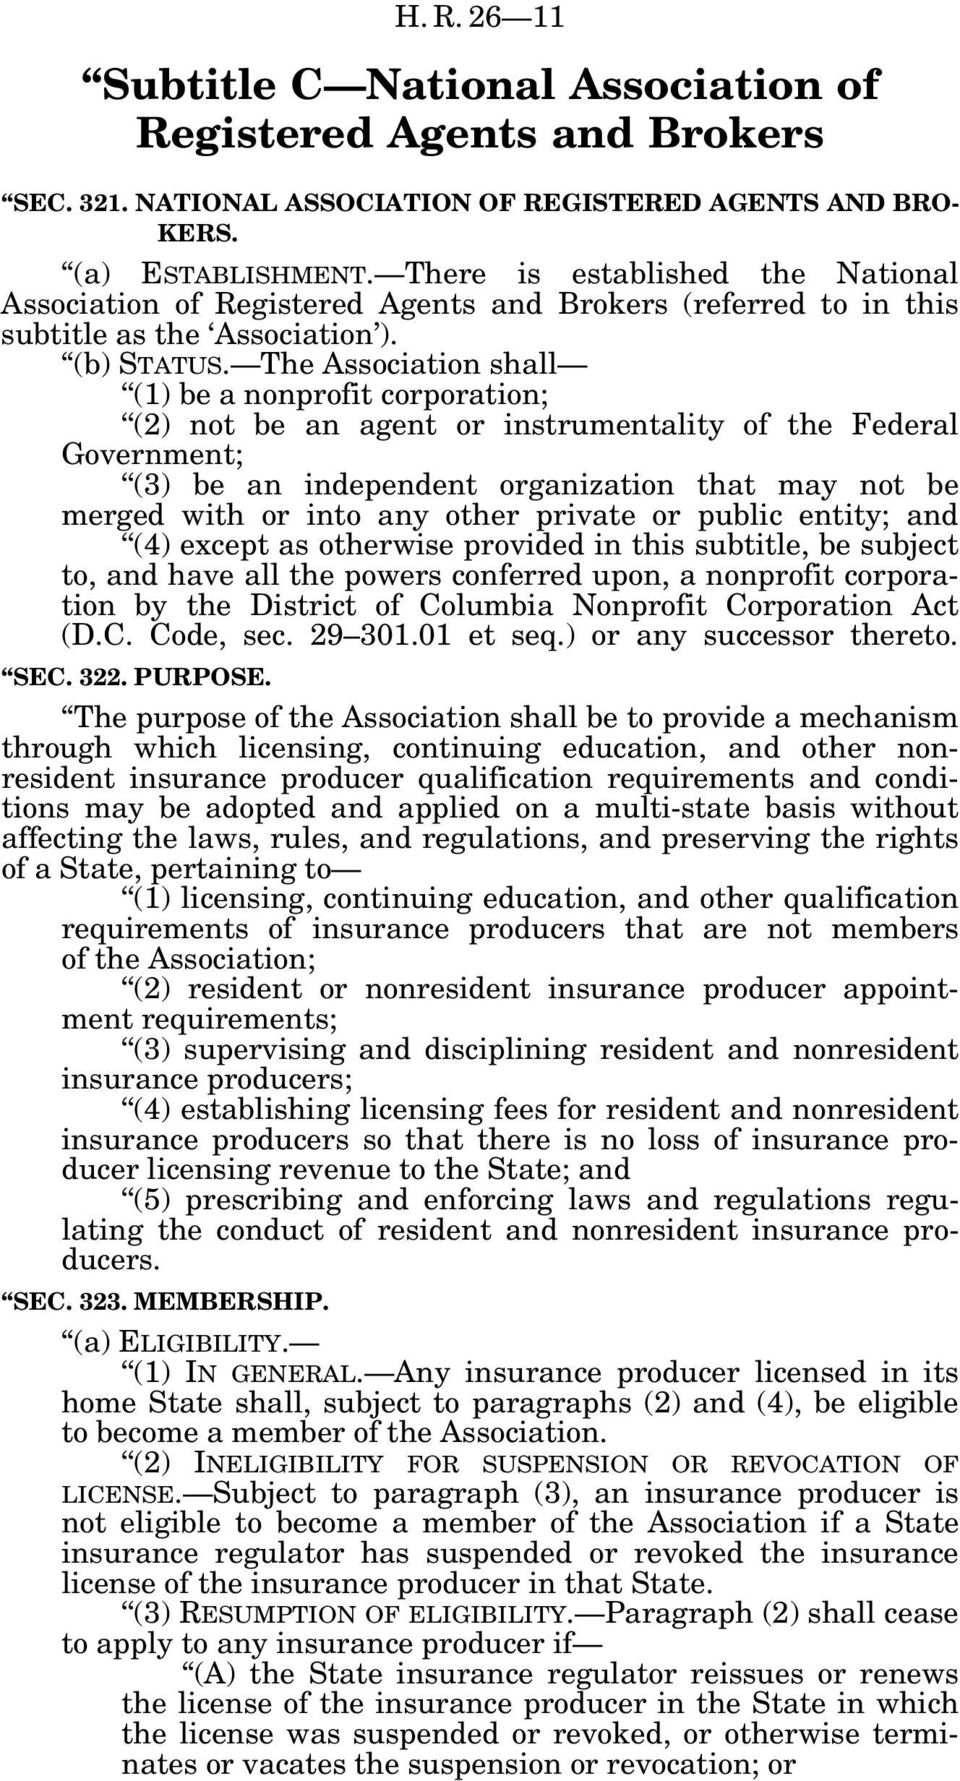 The Association shall (1) be a nonprofit corporation; (2) not be an agent or instrumentality of the Federal Government; (3) be an independent organization that may not be merged with or into any